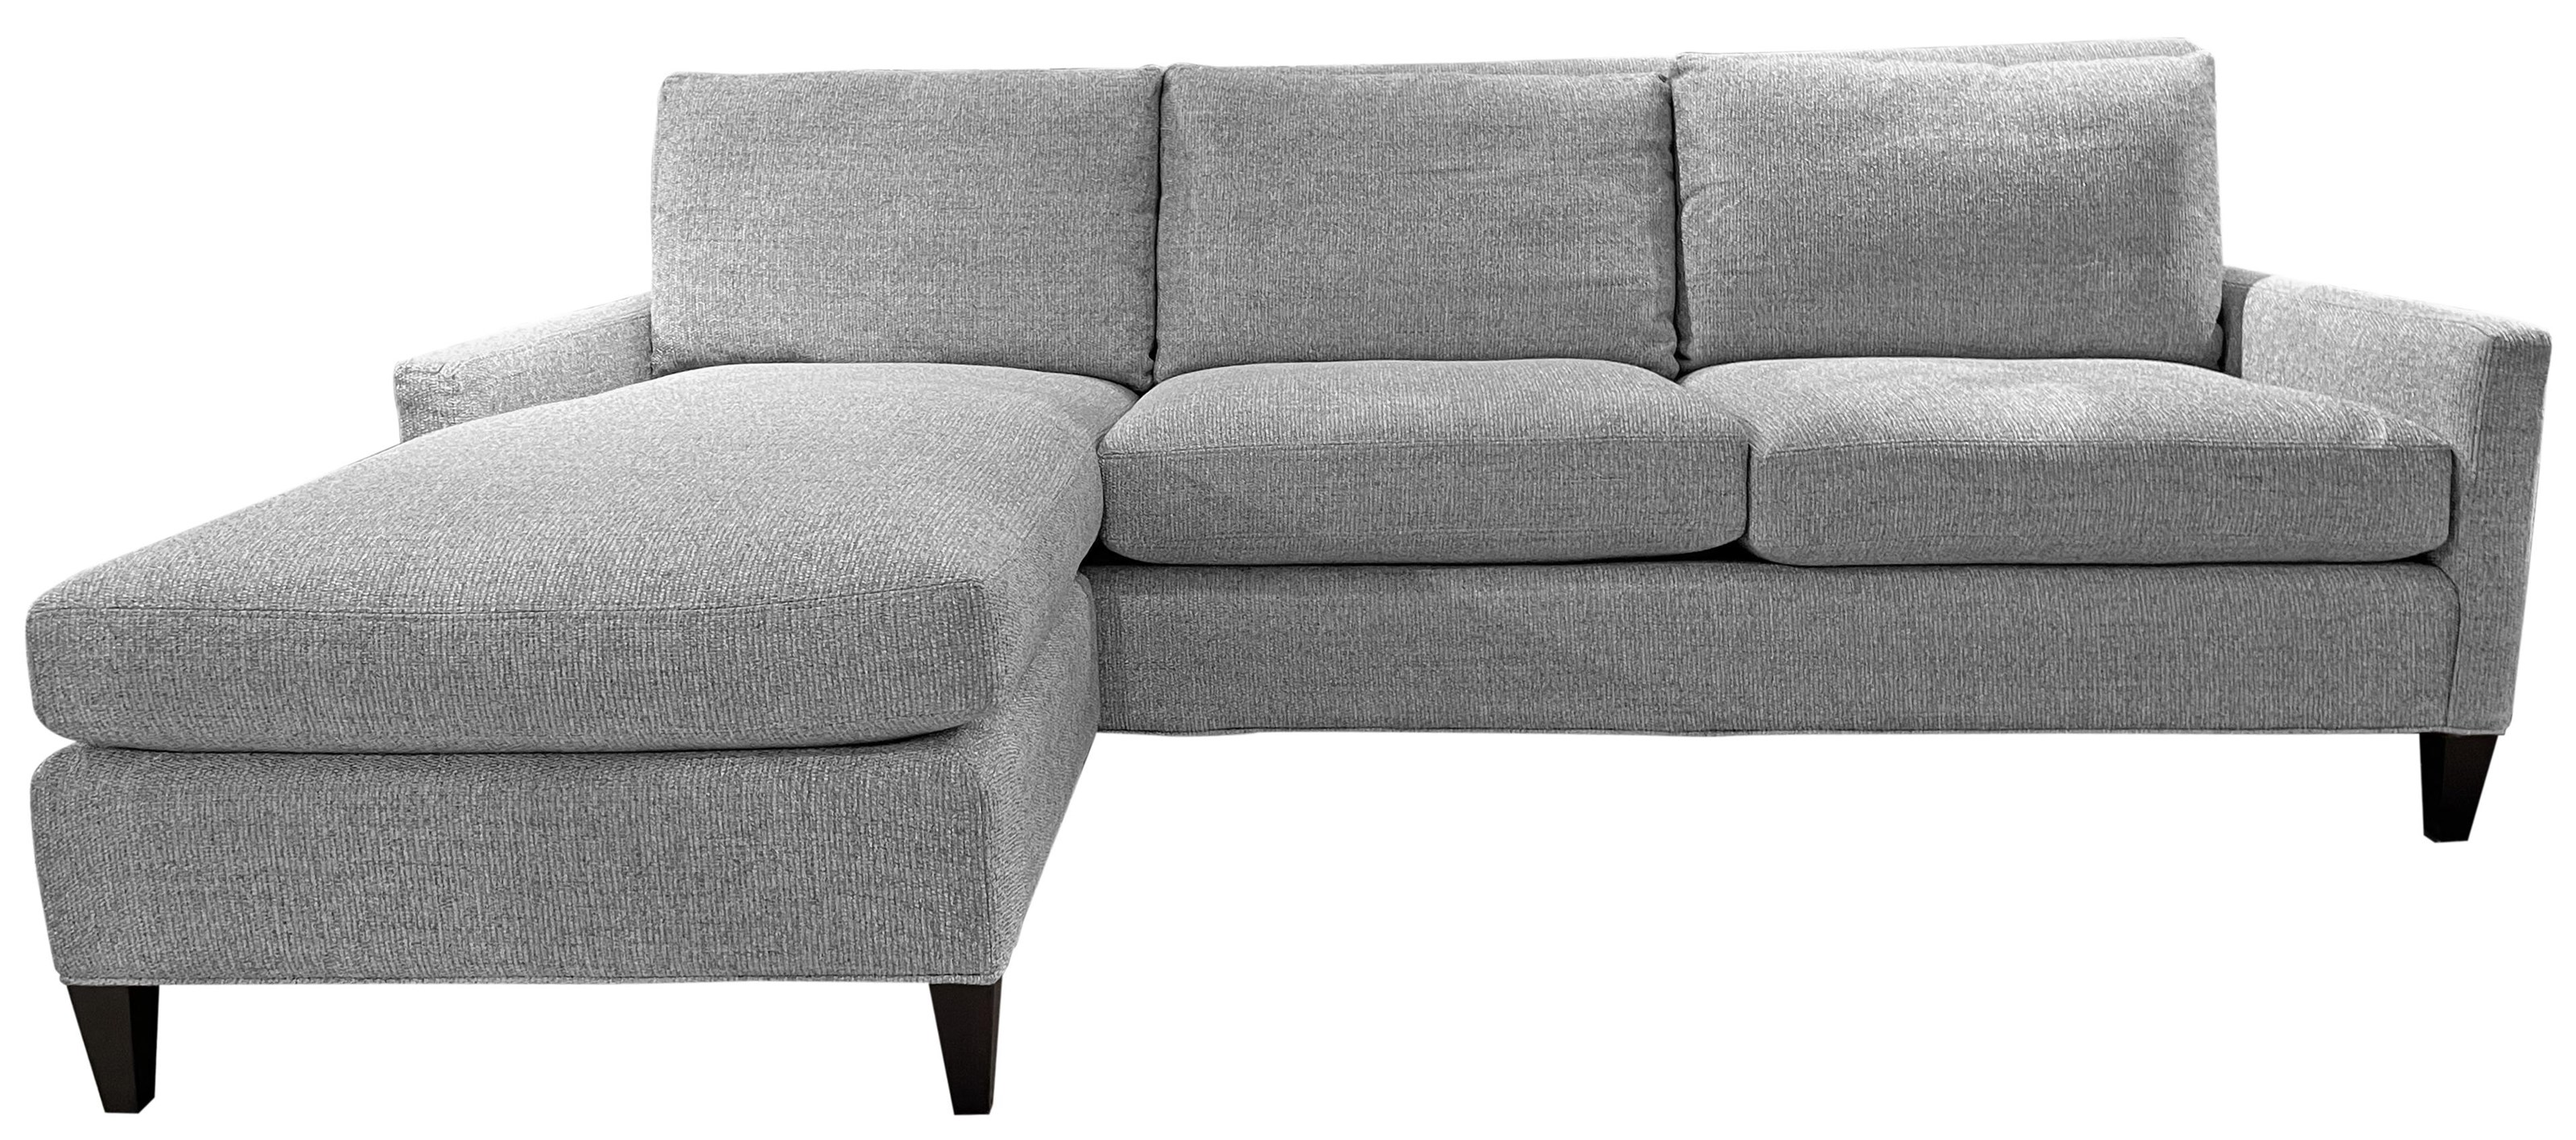 Sophia Sofa with Chaise by McCreary Modern at C. S. Wo & Sons Hawaii